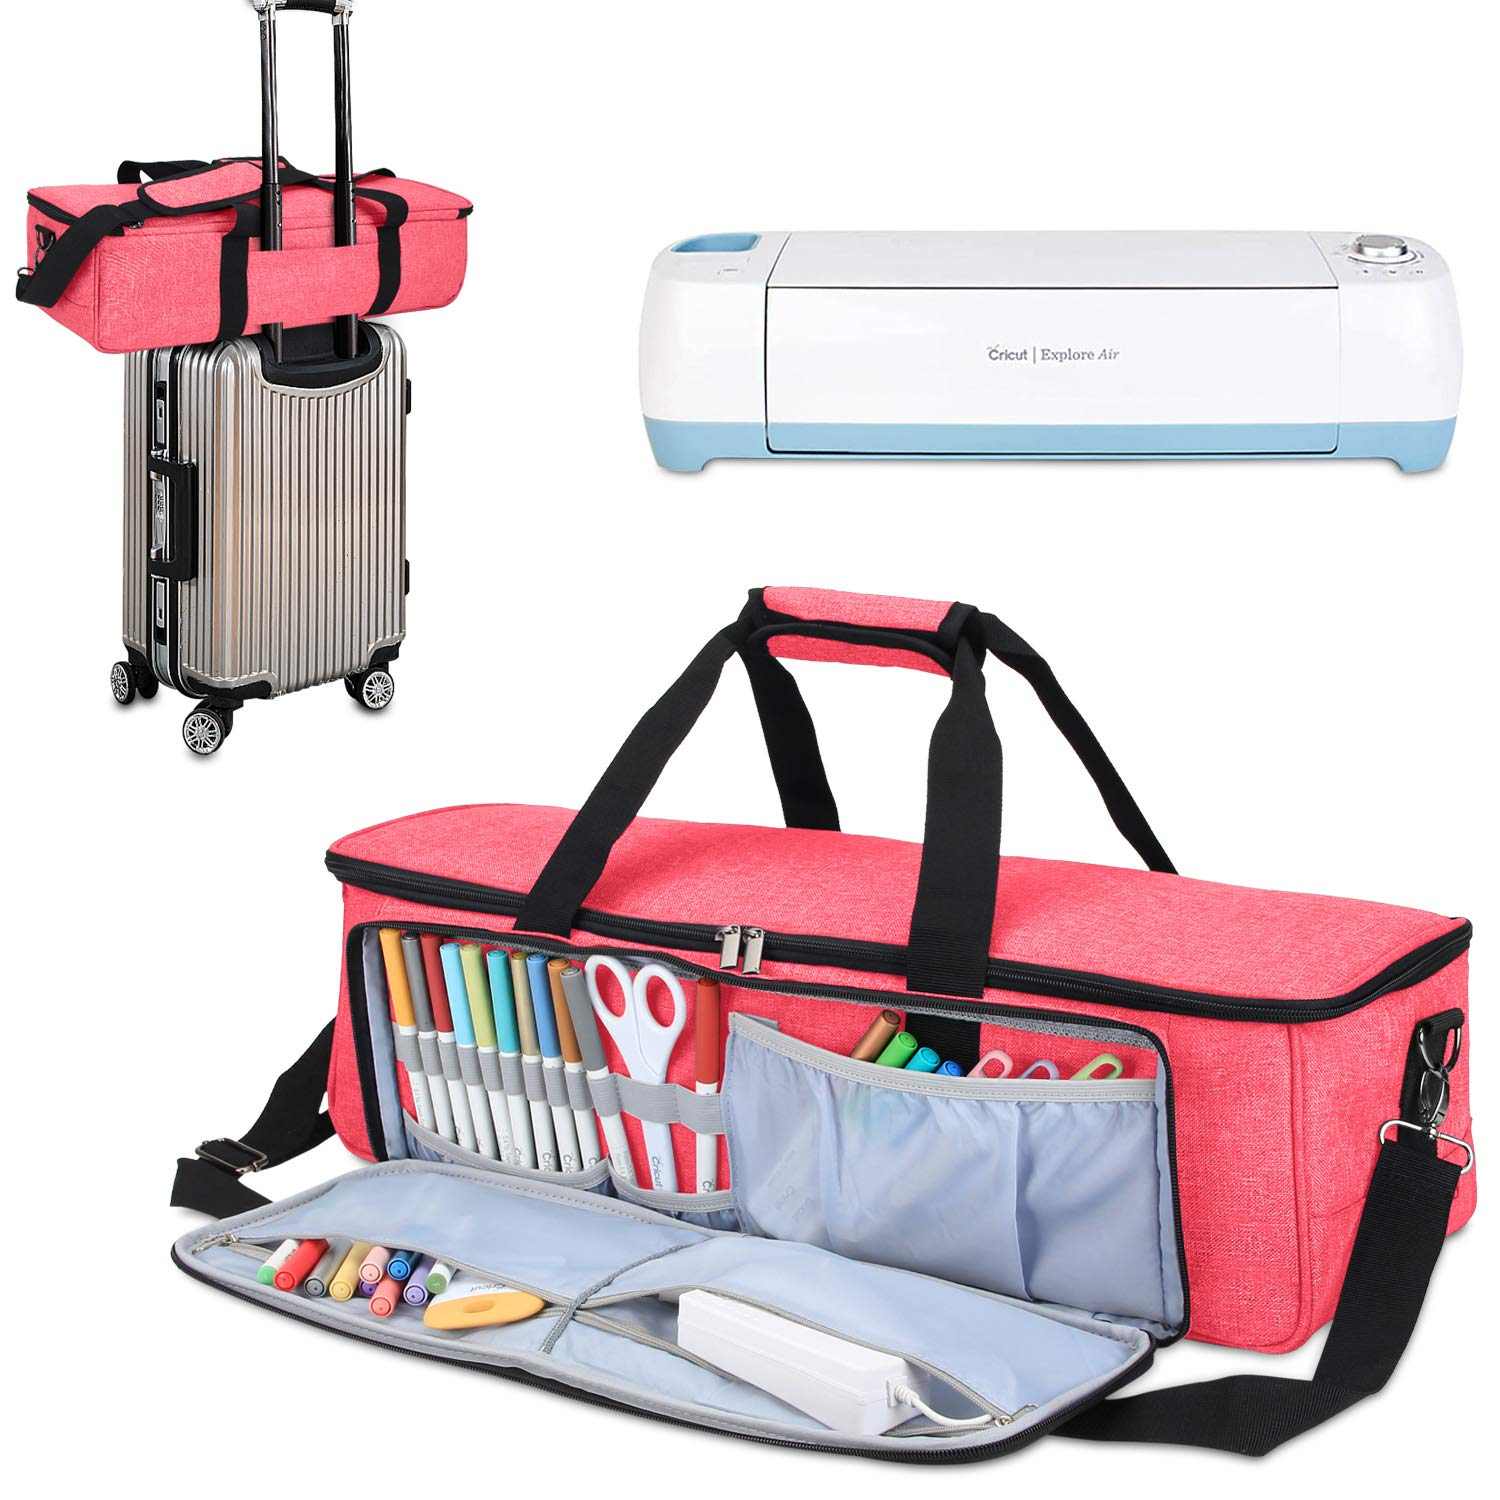 Luxja Carrying Bag Compatible with Cricut Die-Cutting Machine and Supplies, Tote Bag Compatible with Cricut Explore Air (Air2) and Maker (Bag Only, Patent Pending), Red